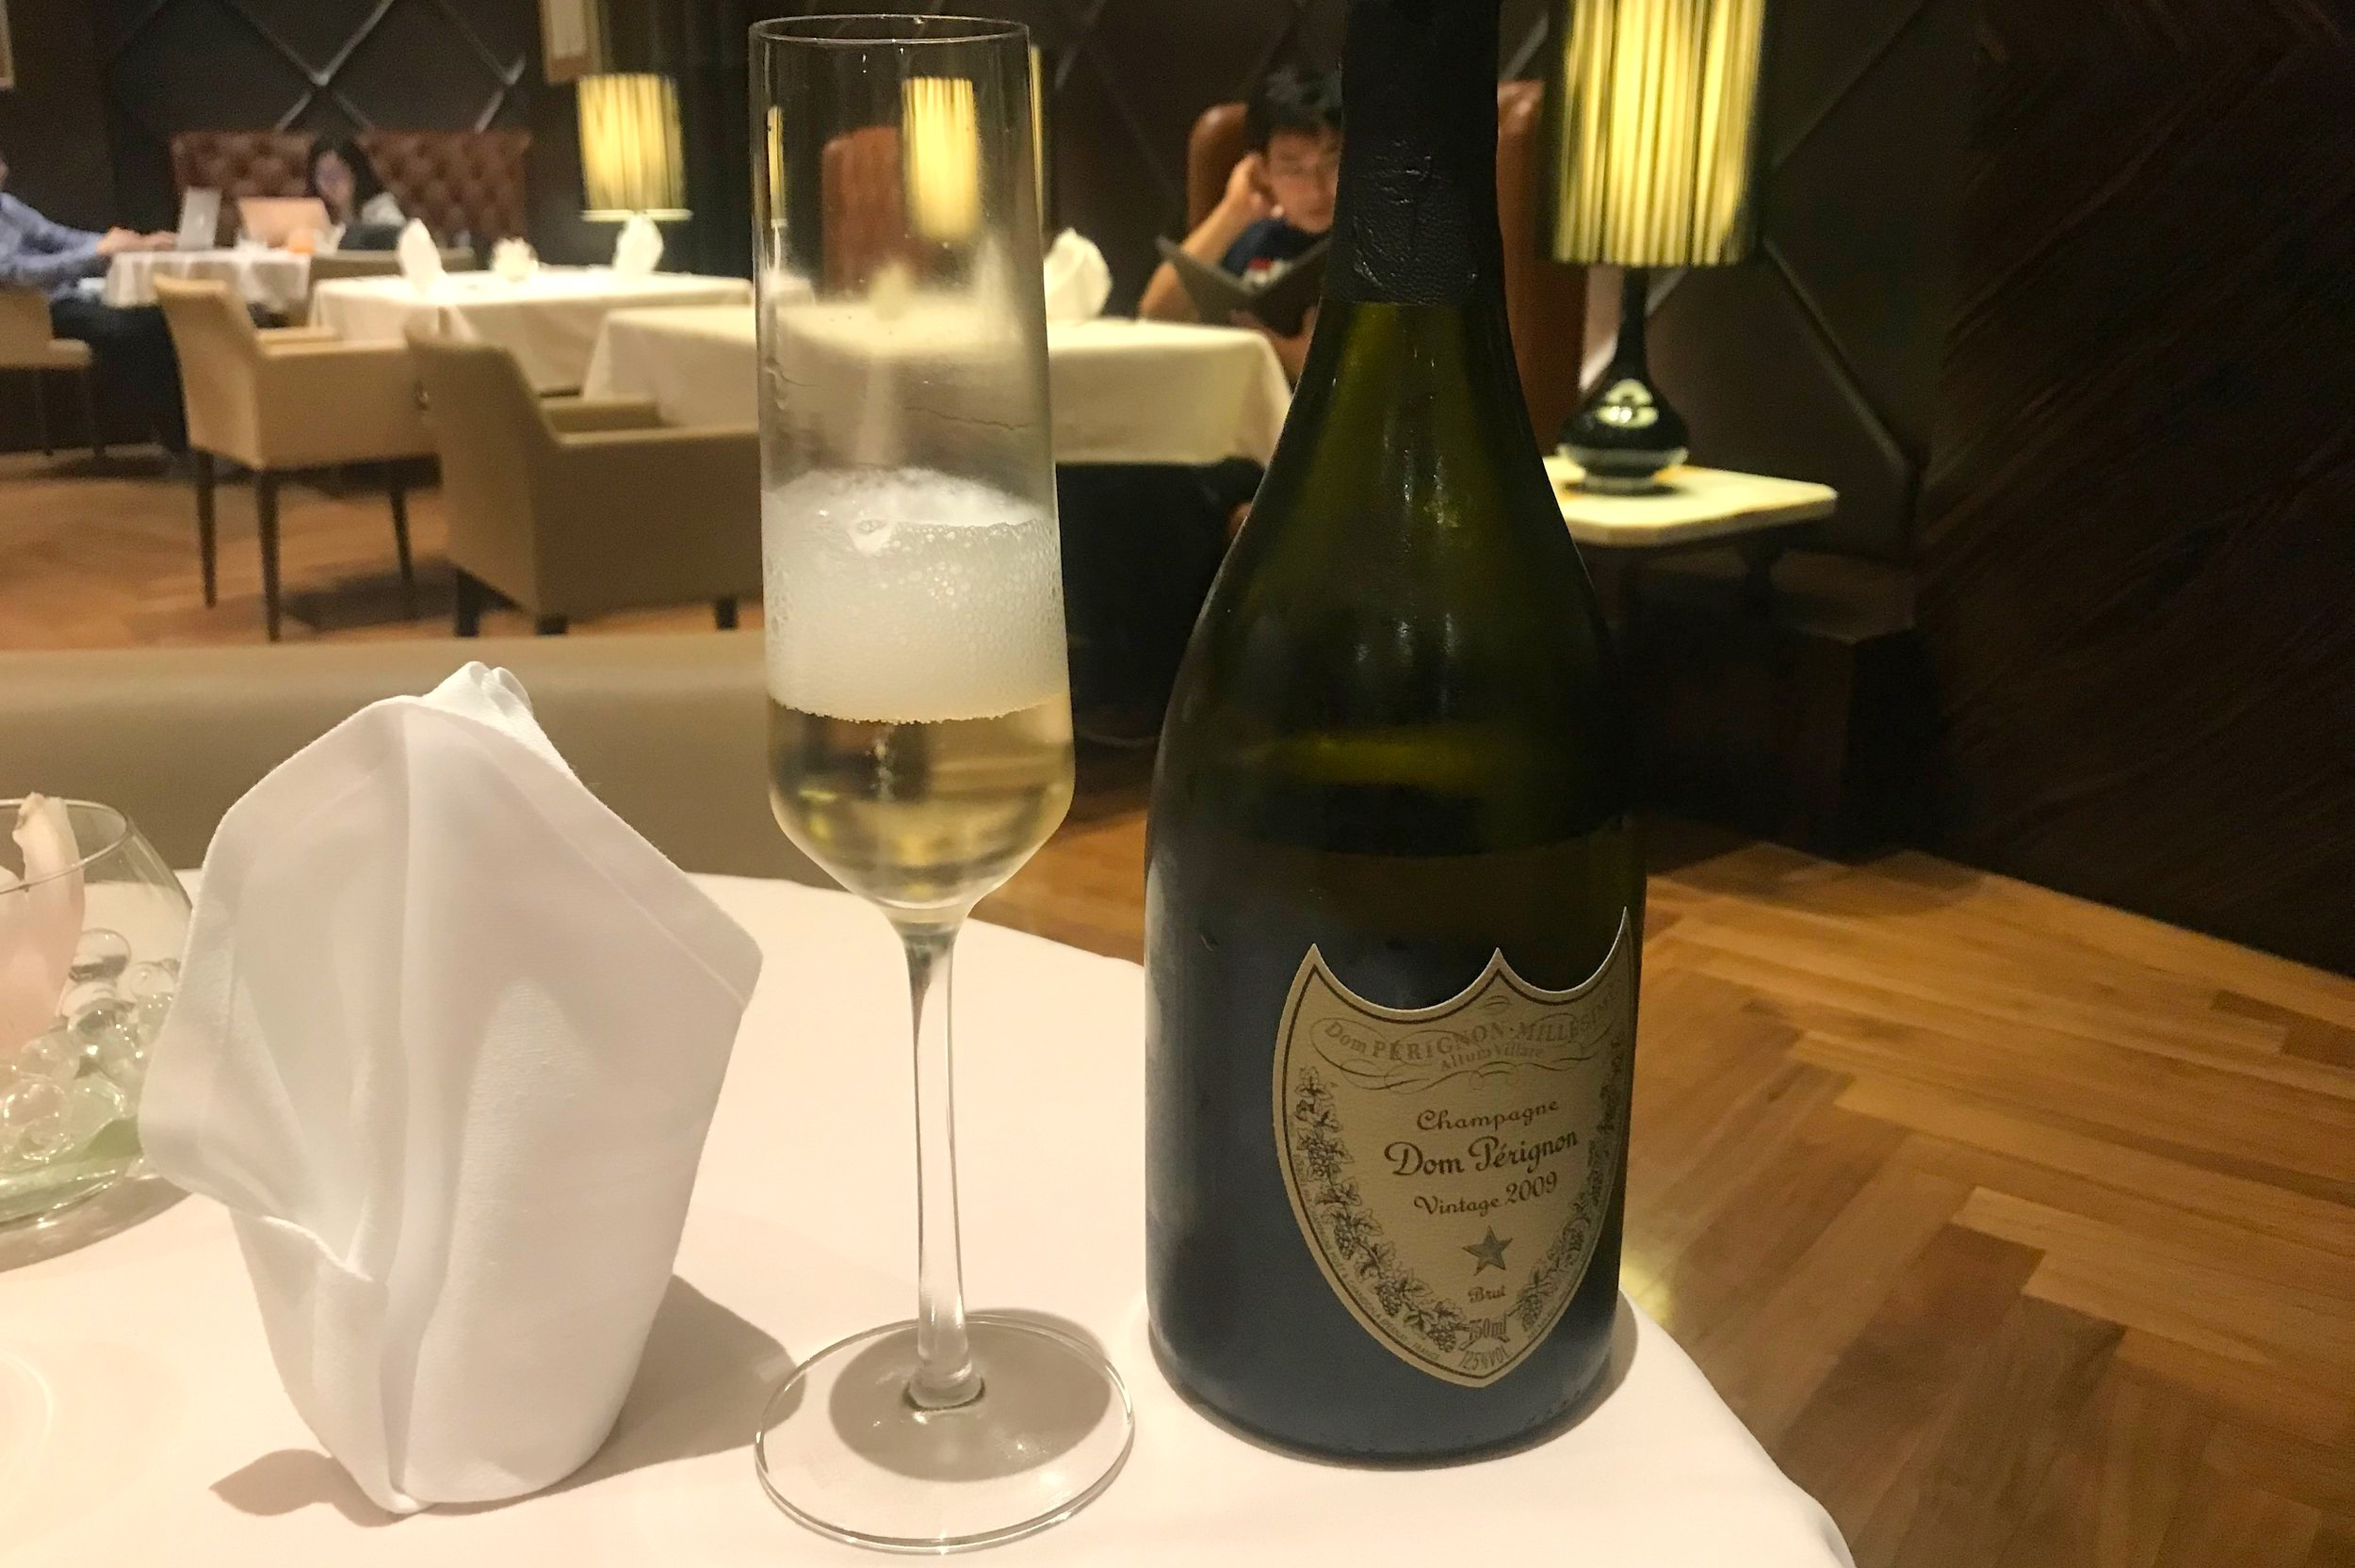 The Private Room by Singapore Airlines – Dom Perignon Vintage 2009